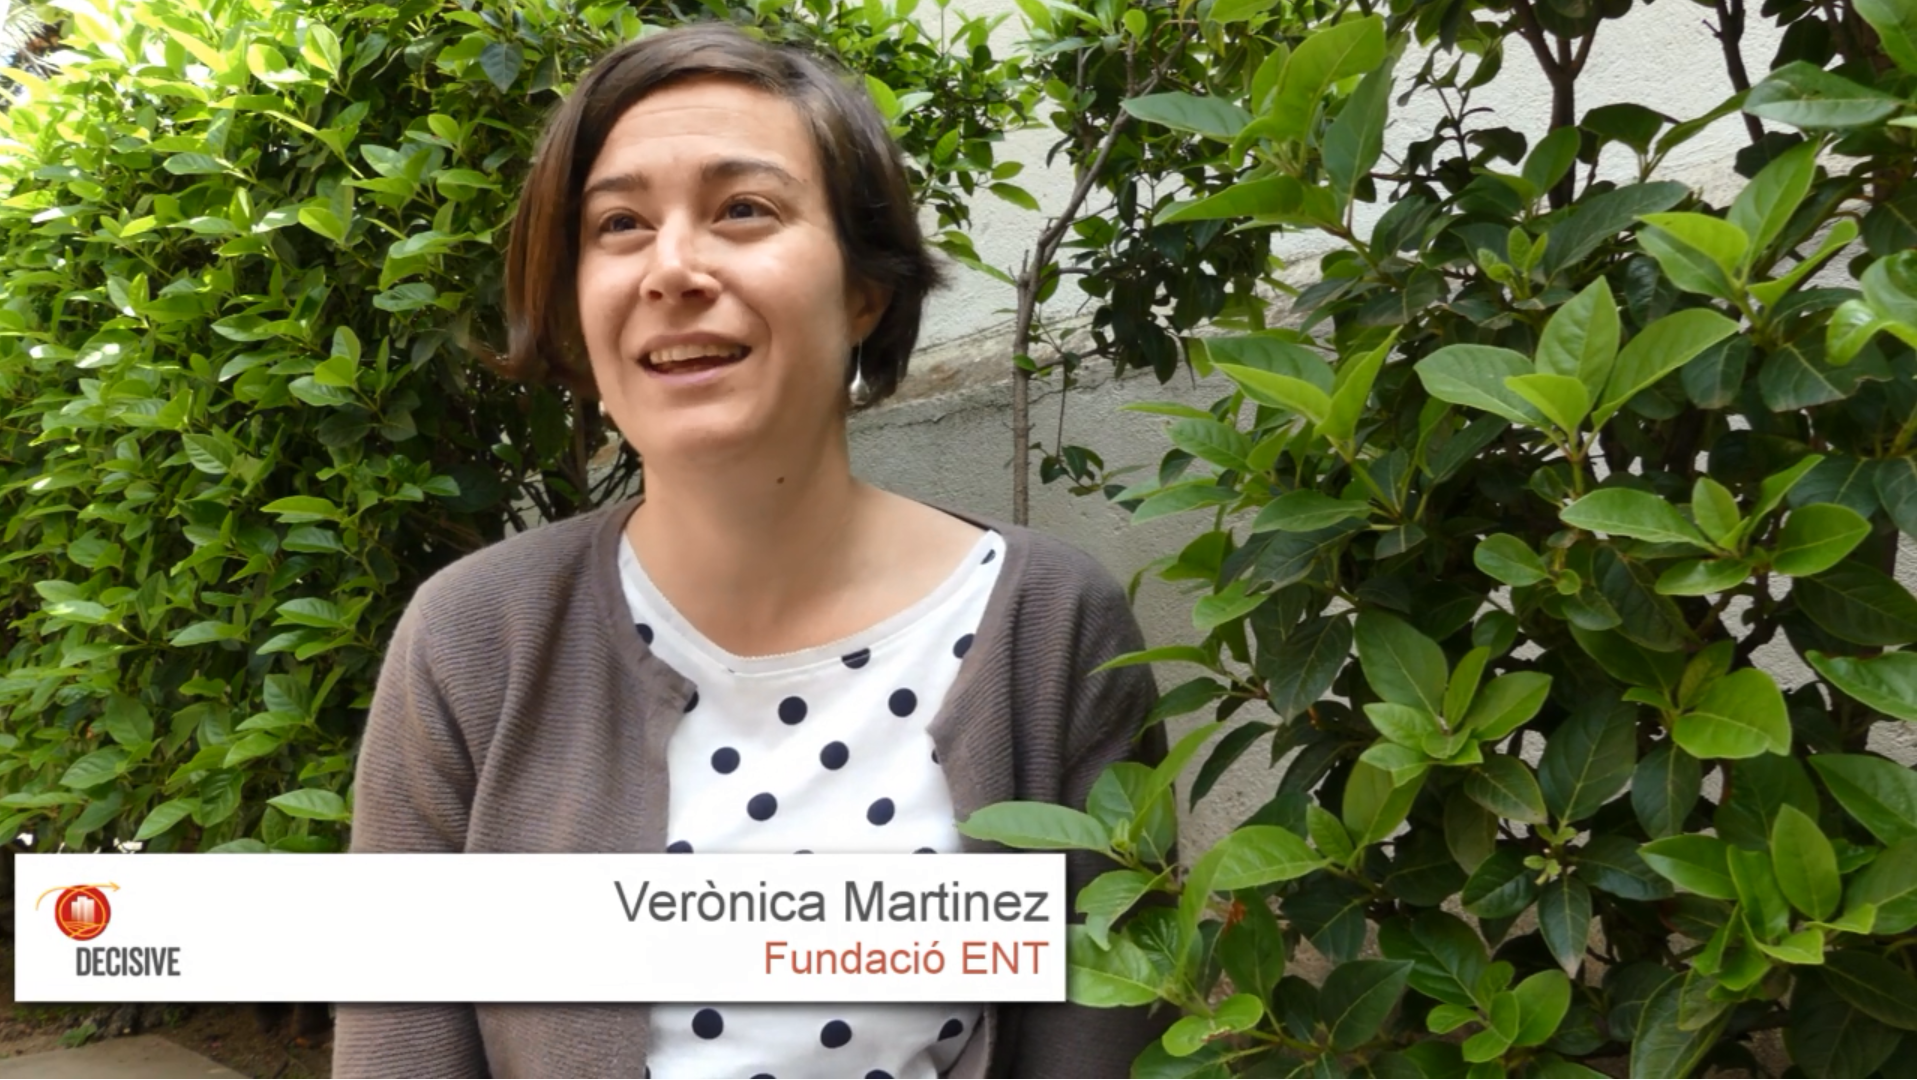 Fundacio ENT Tells Us More About The Upcoming Decision Support Tool